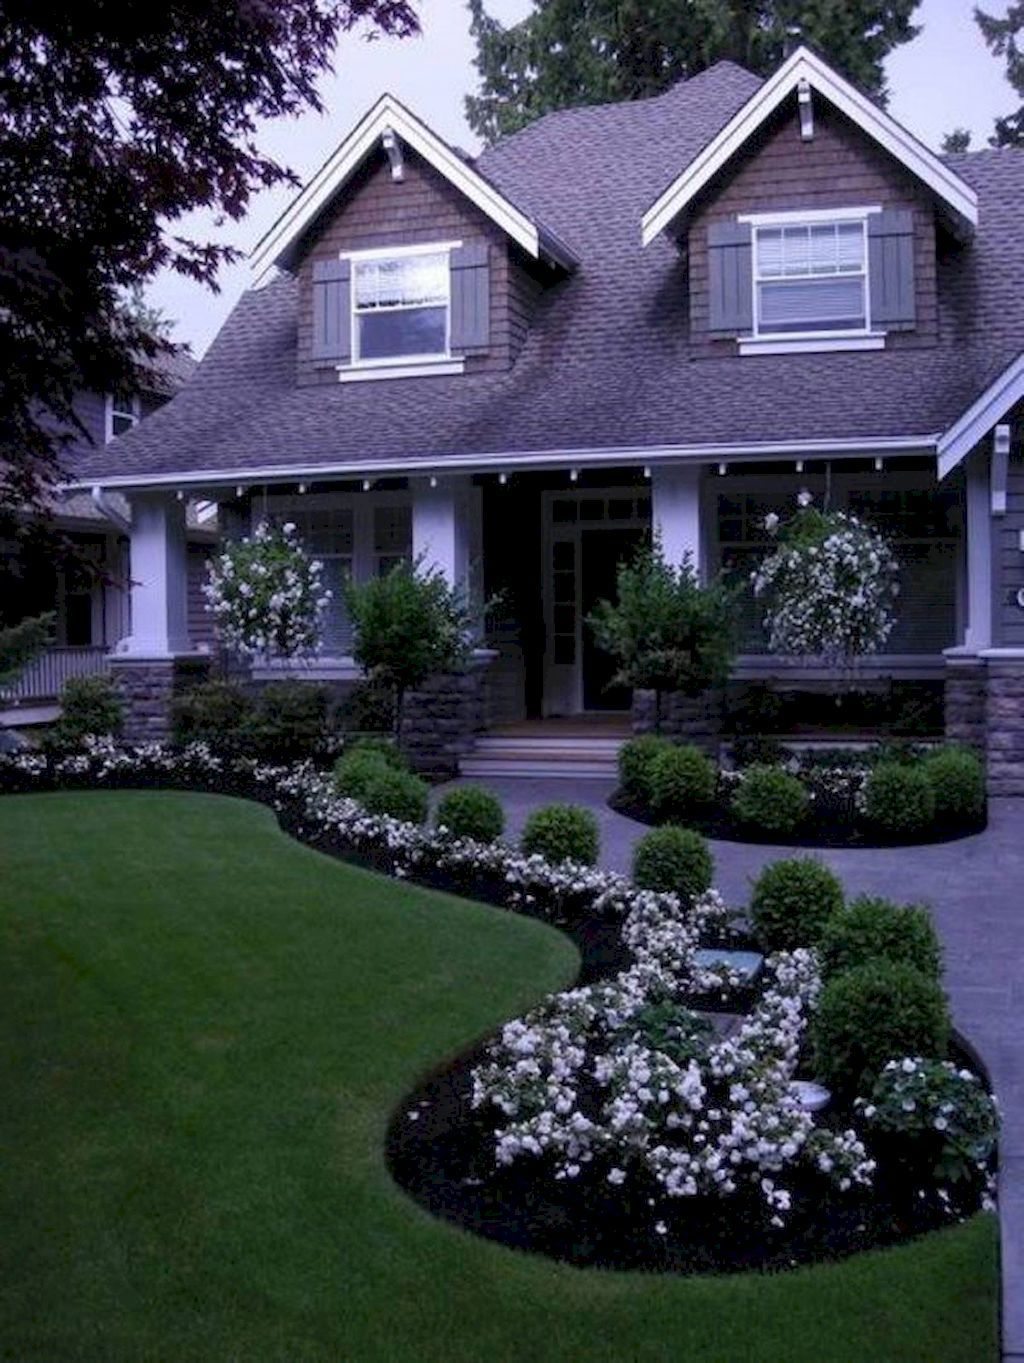 40 beautiful front yard landscaping ideas yard On front landscape design